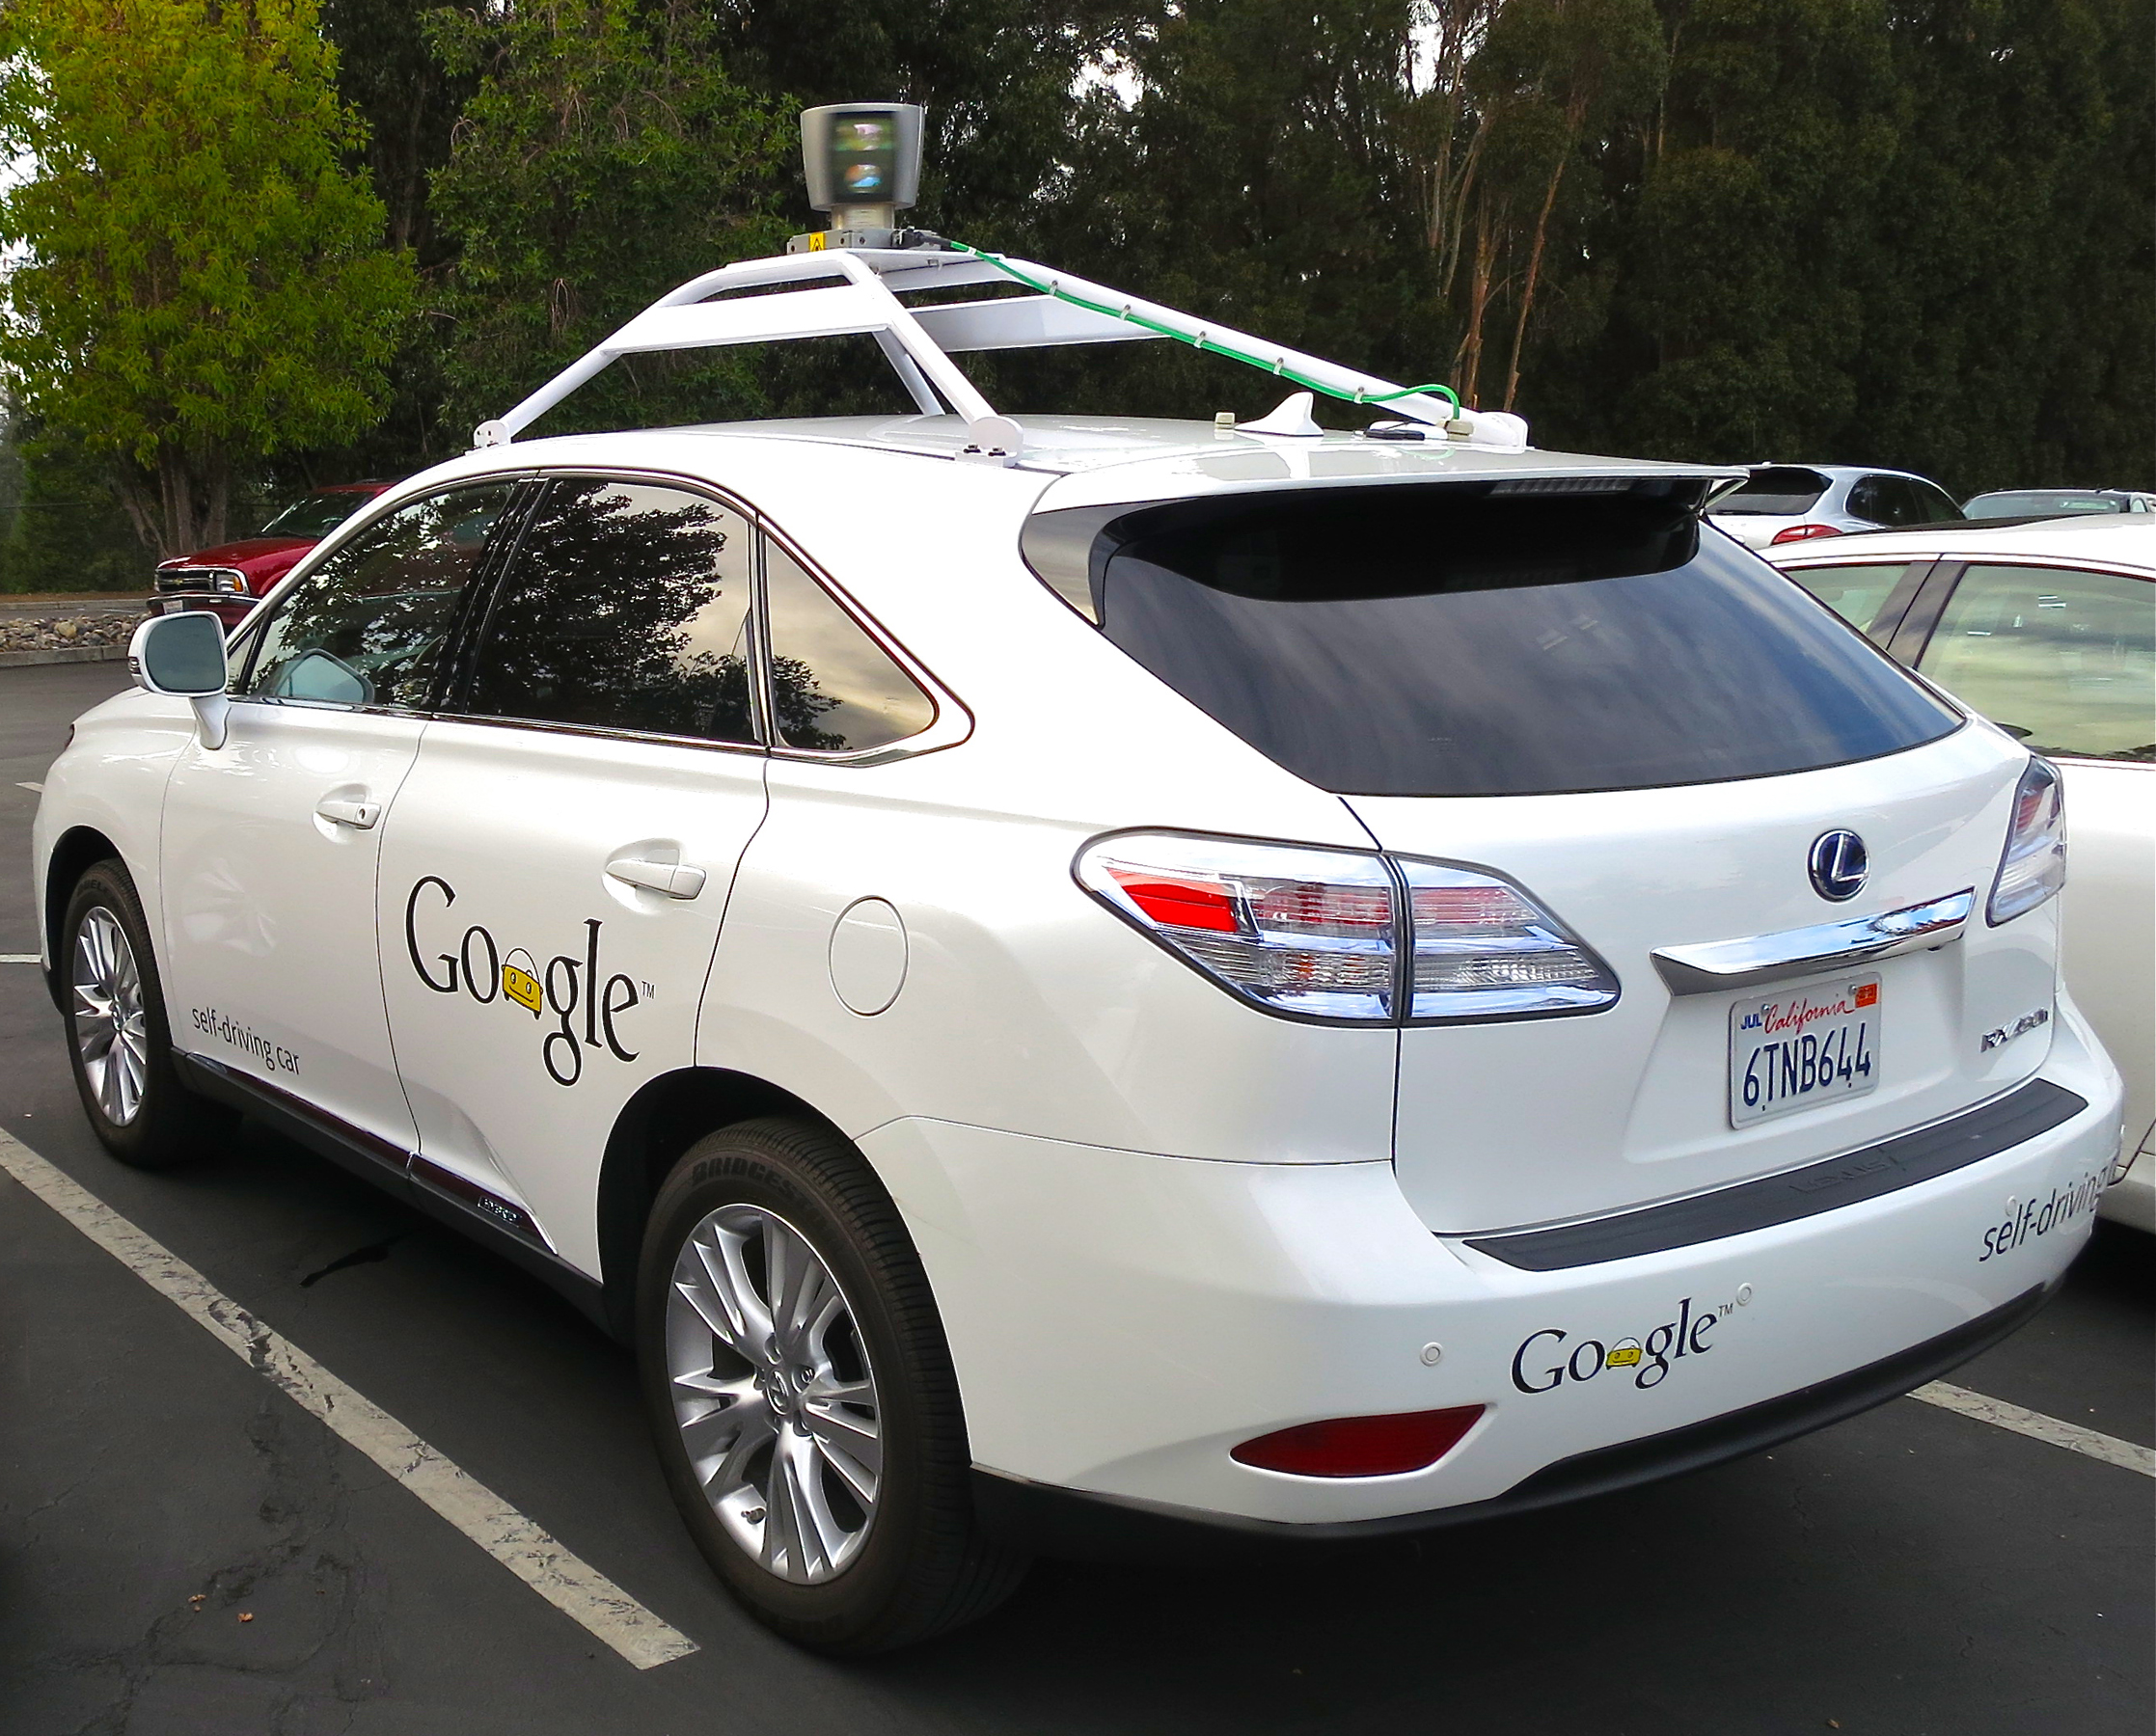 Driverless Car by Google